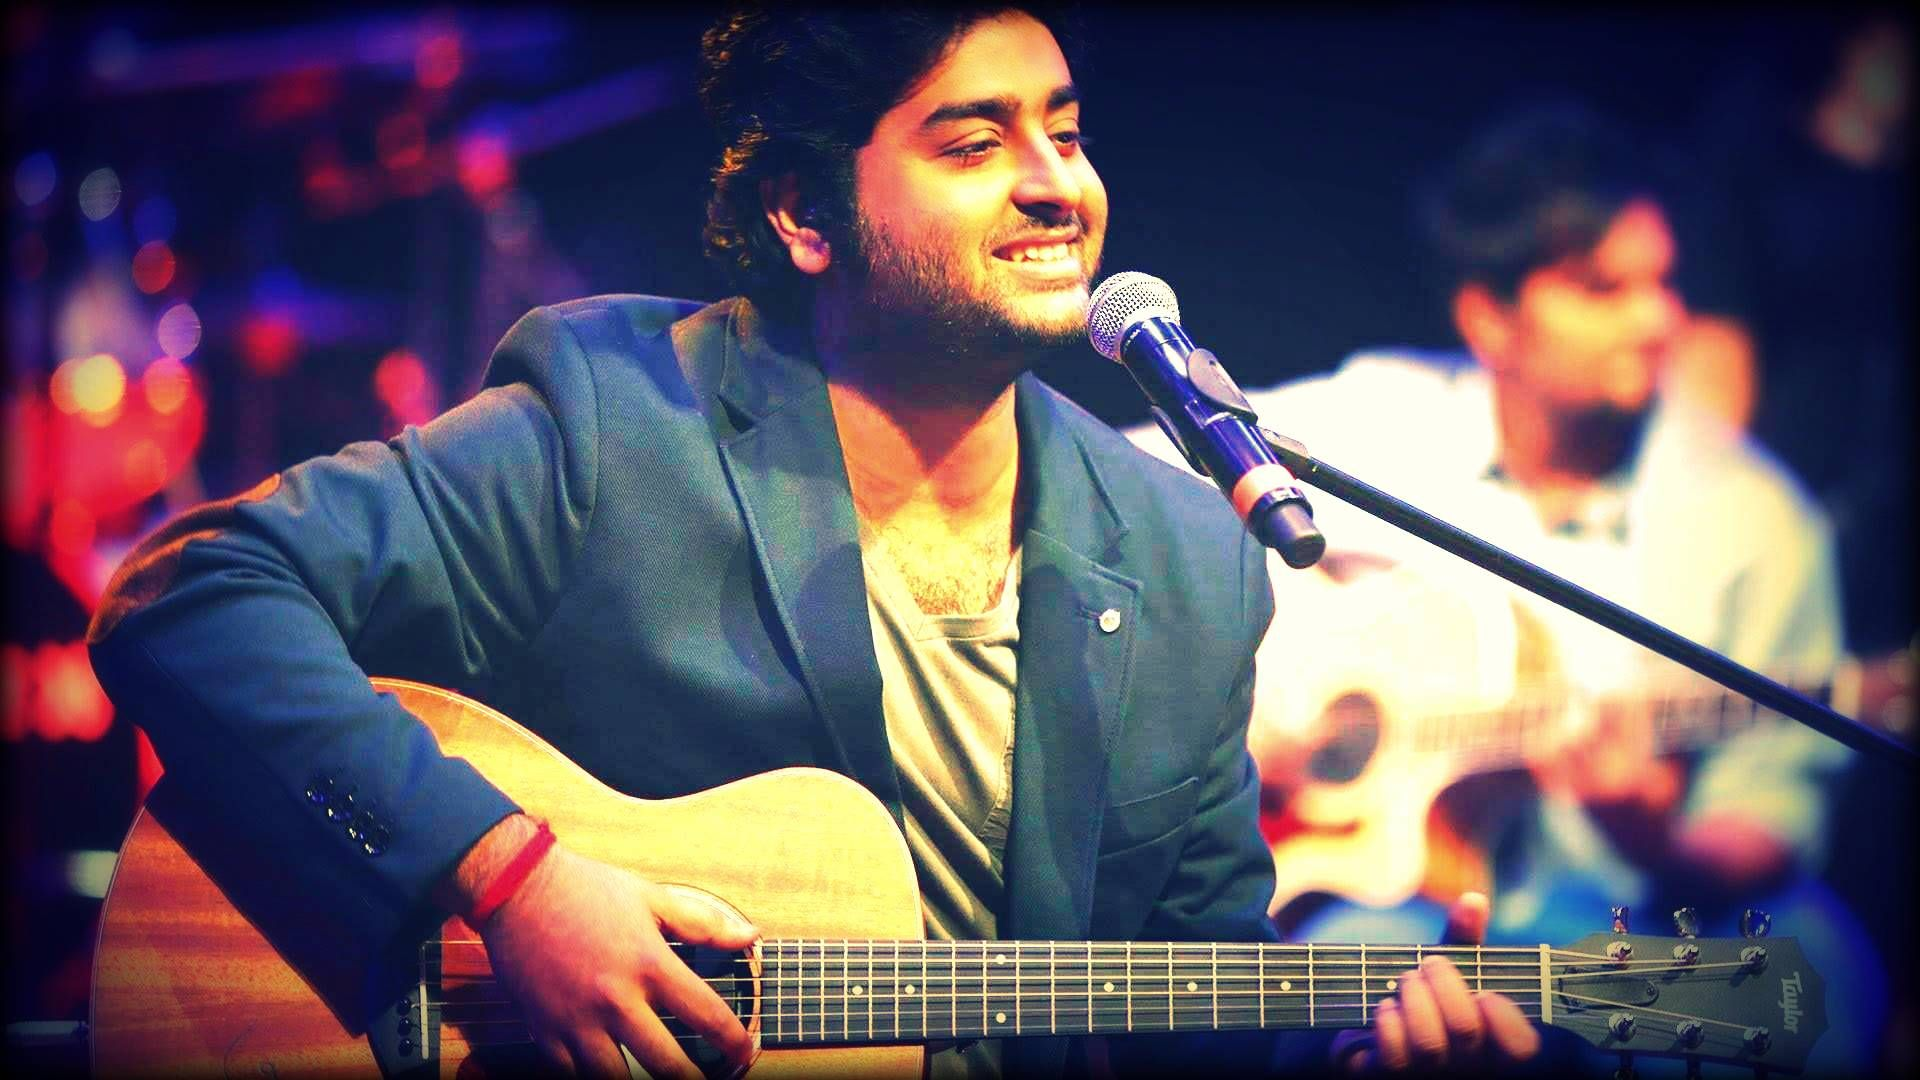 Arijit Singh Full Hd Wallpaper Group (41+), Download for